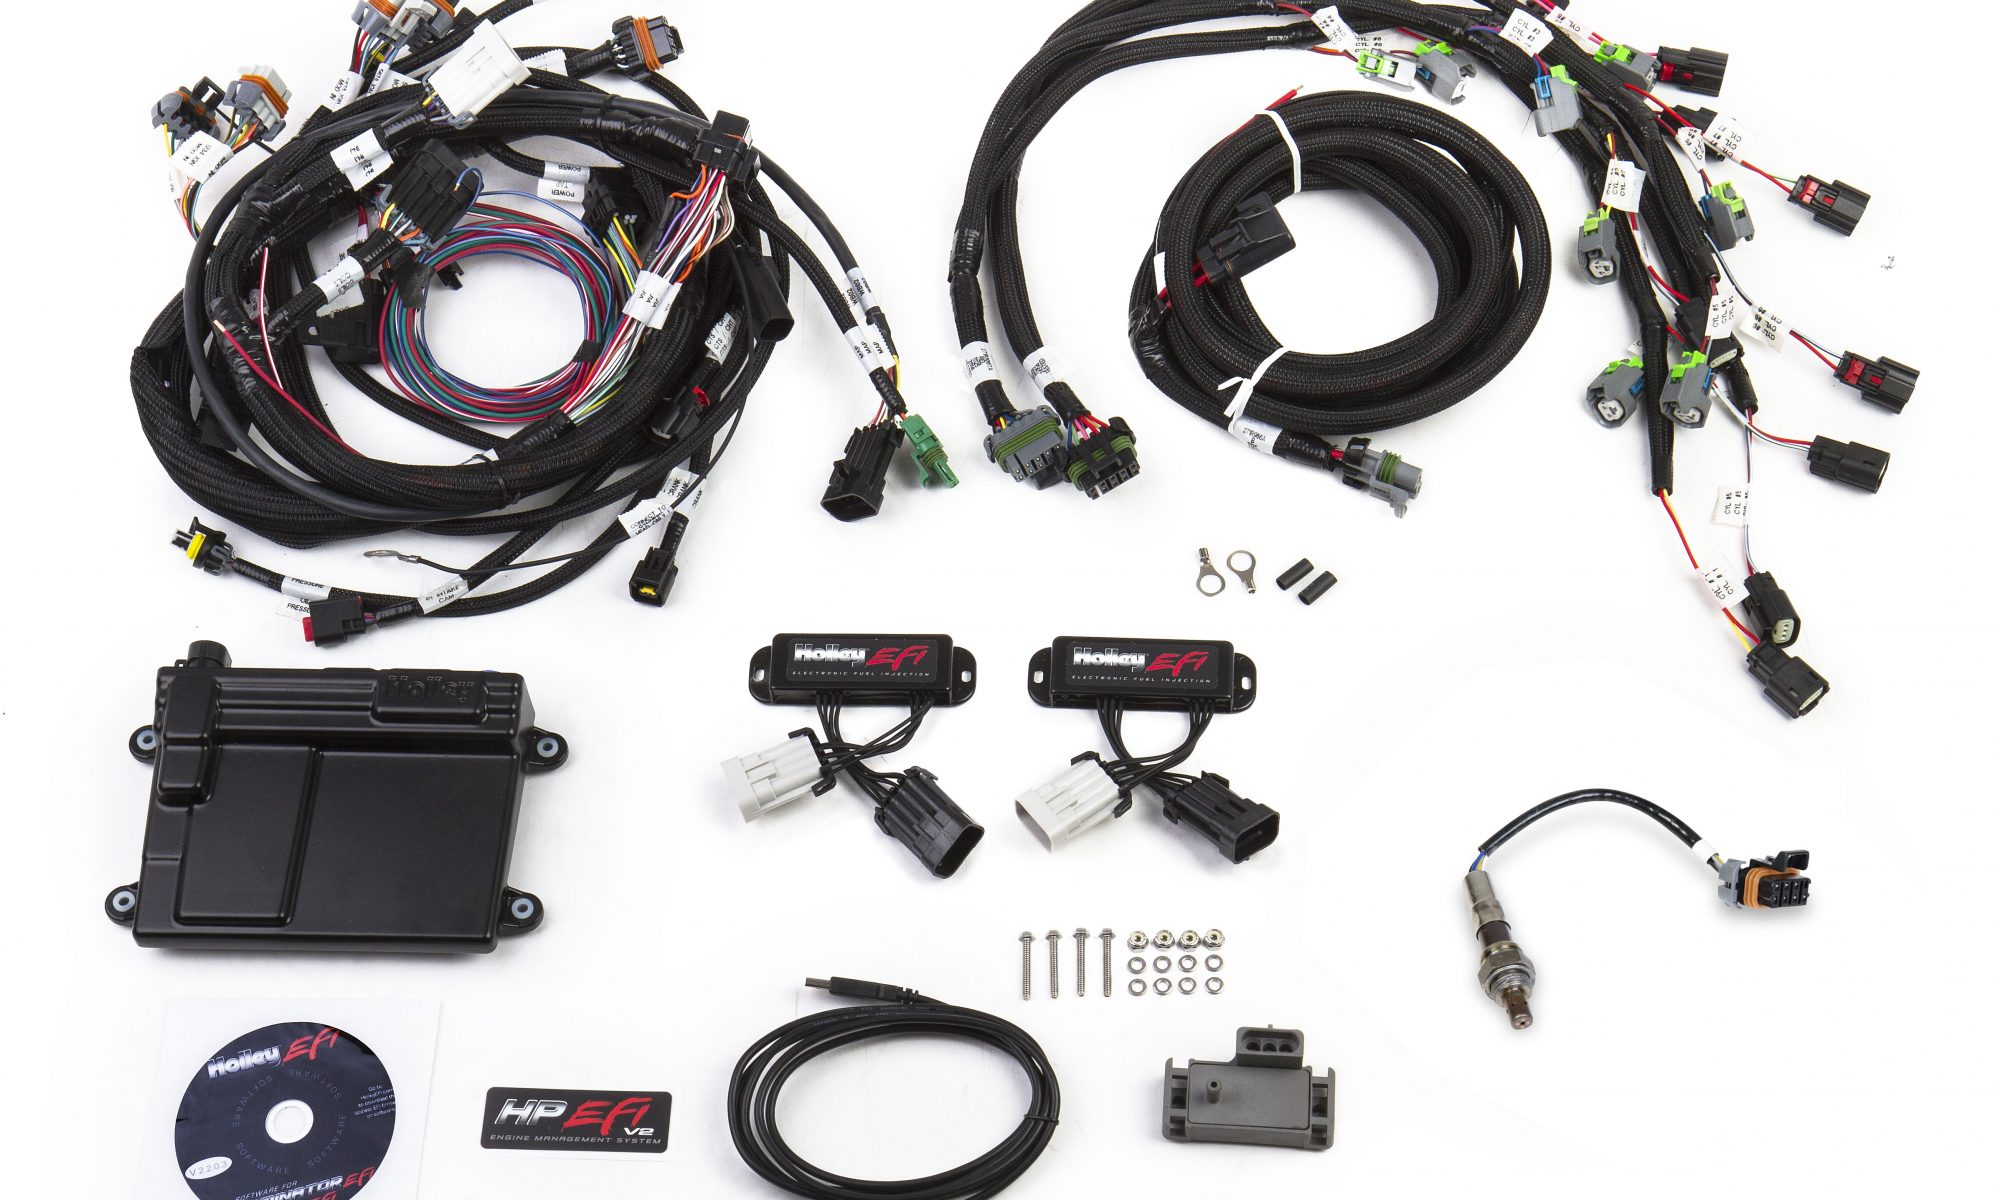 Home / Shop / EFI & ECU Units / Holley EFI / Holley 2011-Present Ford  Coyote Engine HP EFI ECU & HARNESS KITS